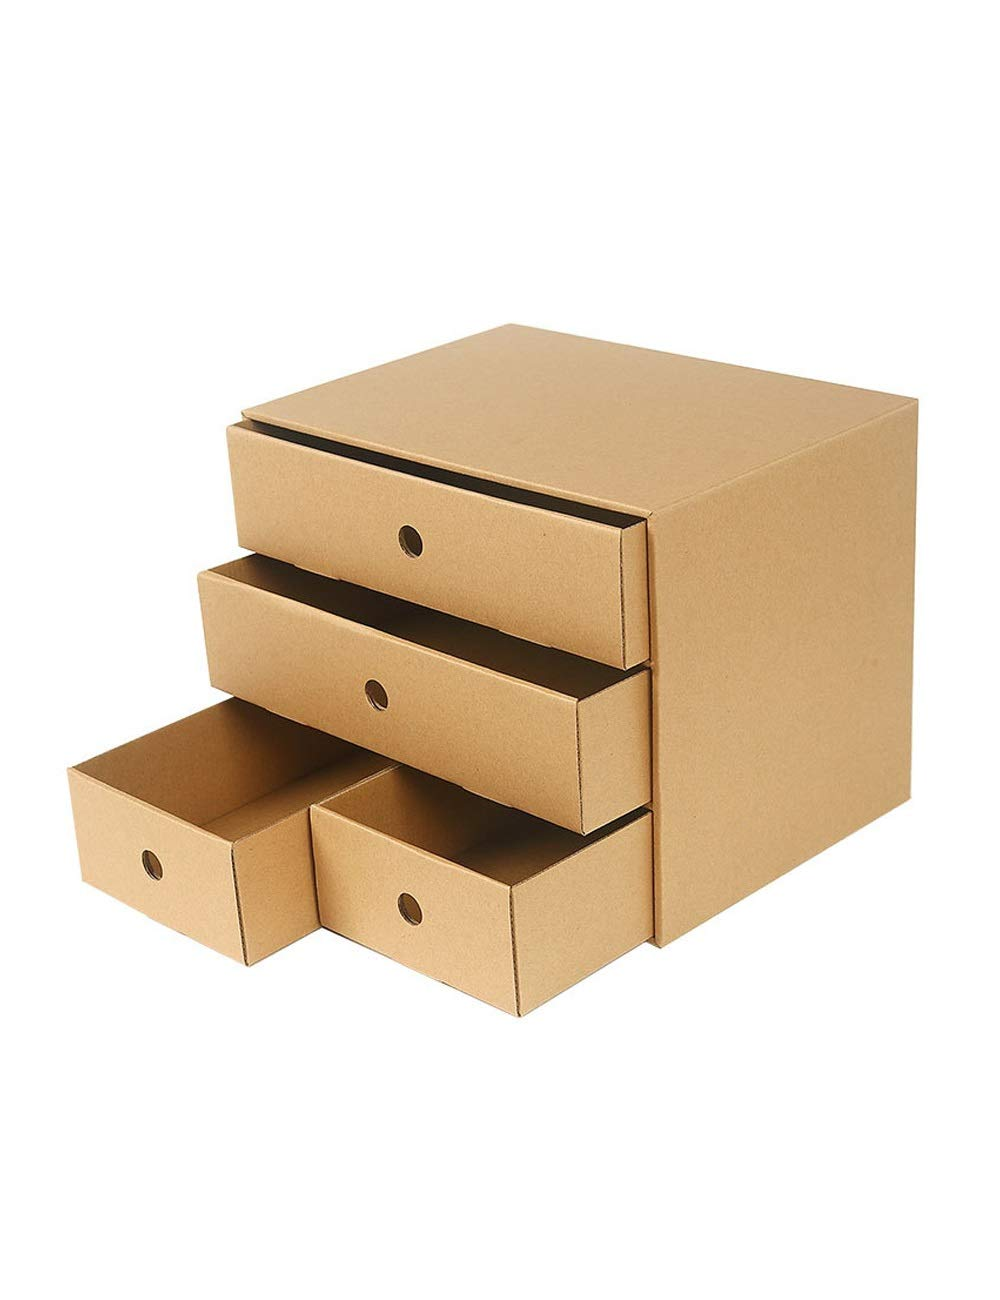 File Cabinets Home Office Furniture Drawer Moving Multi-Function Cabinet Desktop Archive Storage Manager 4 Drawers Color: Primary Color Office File Storage Cabinet Storage Box